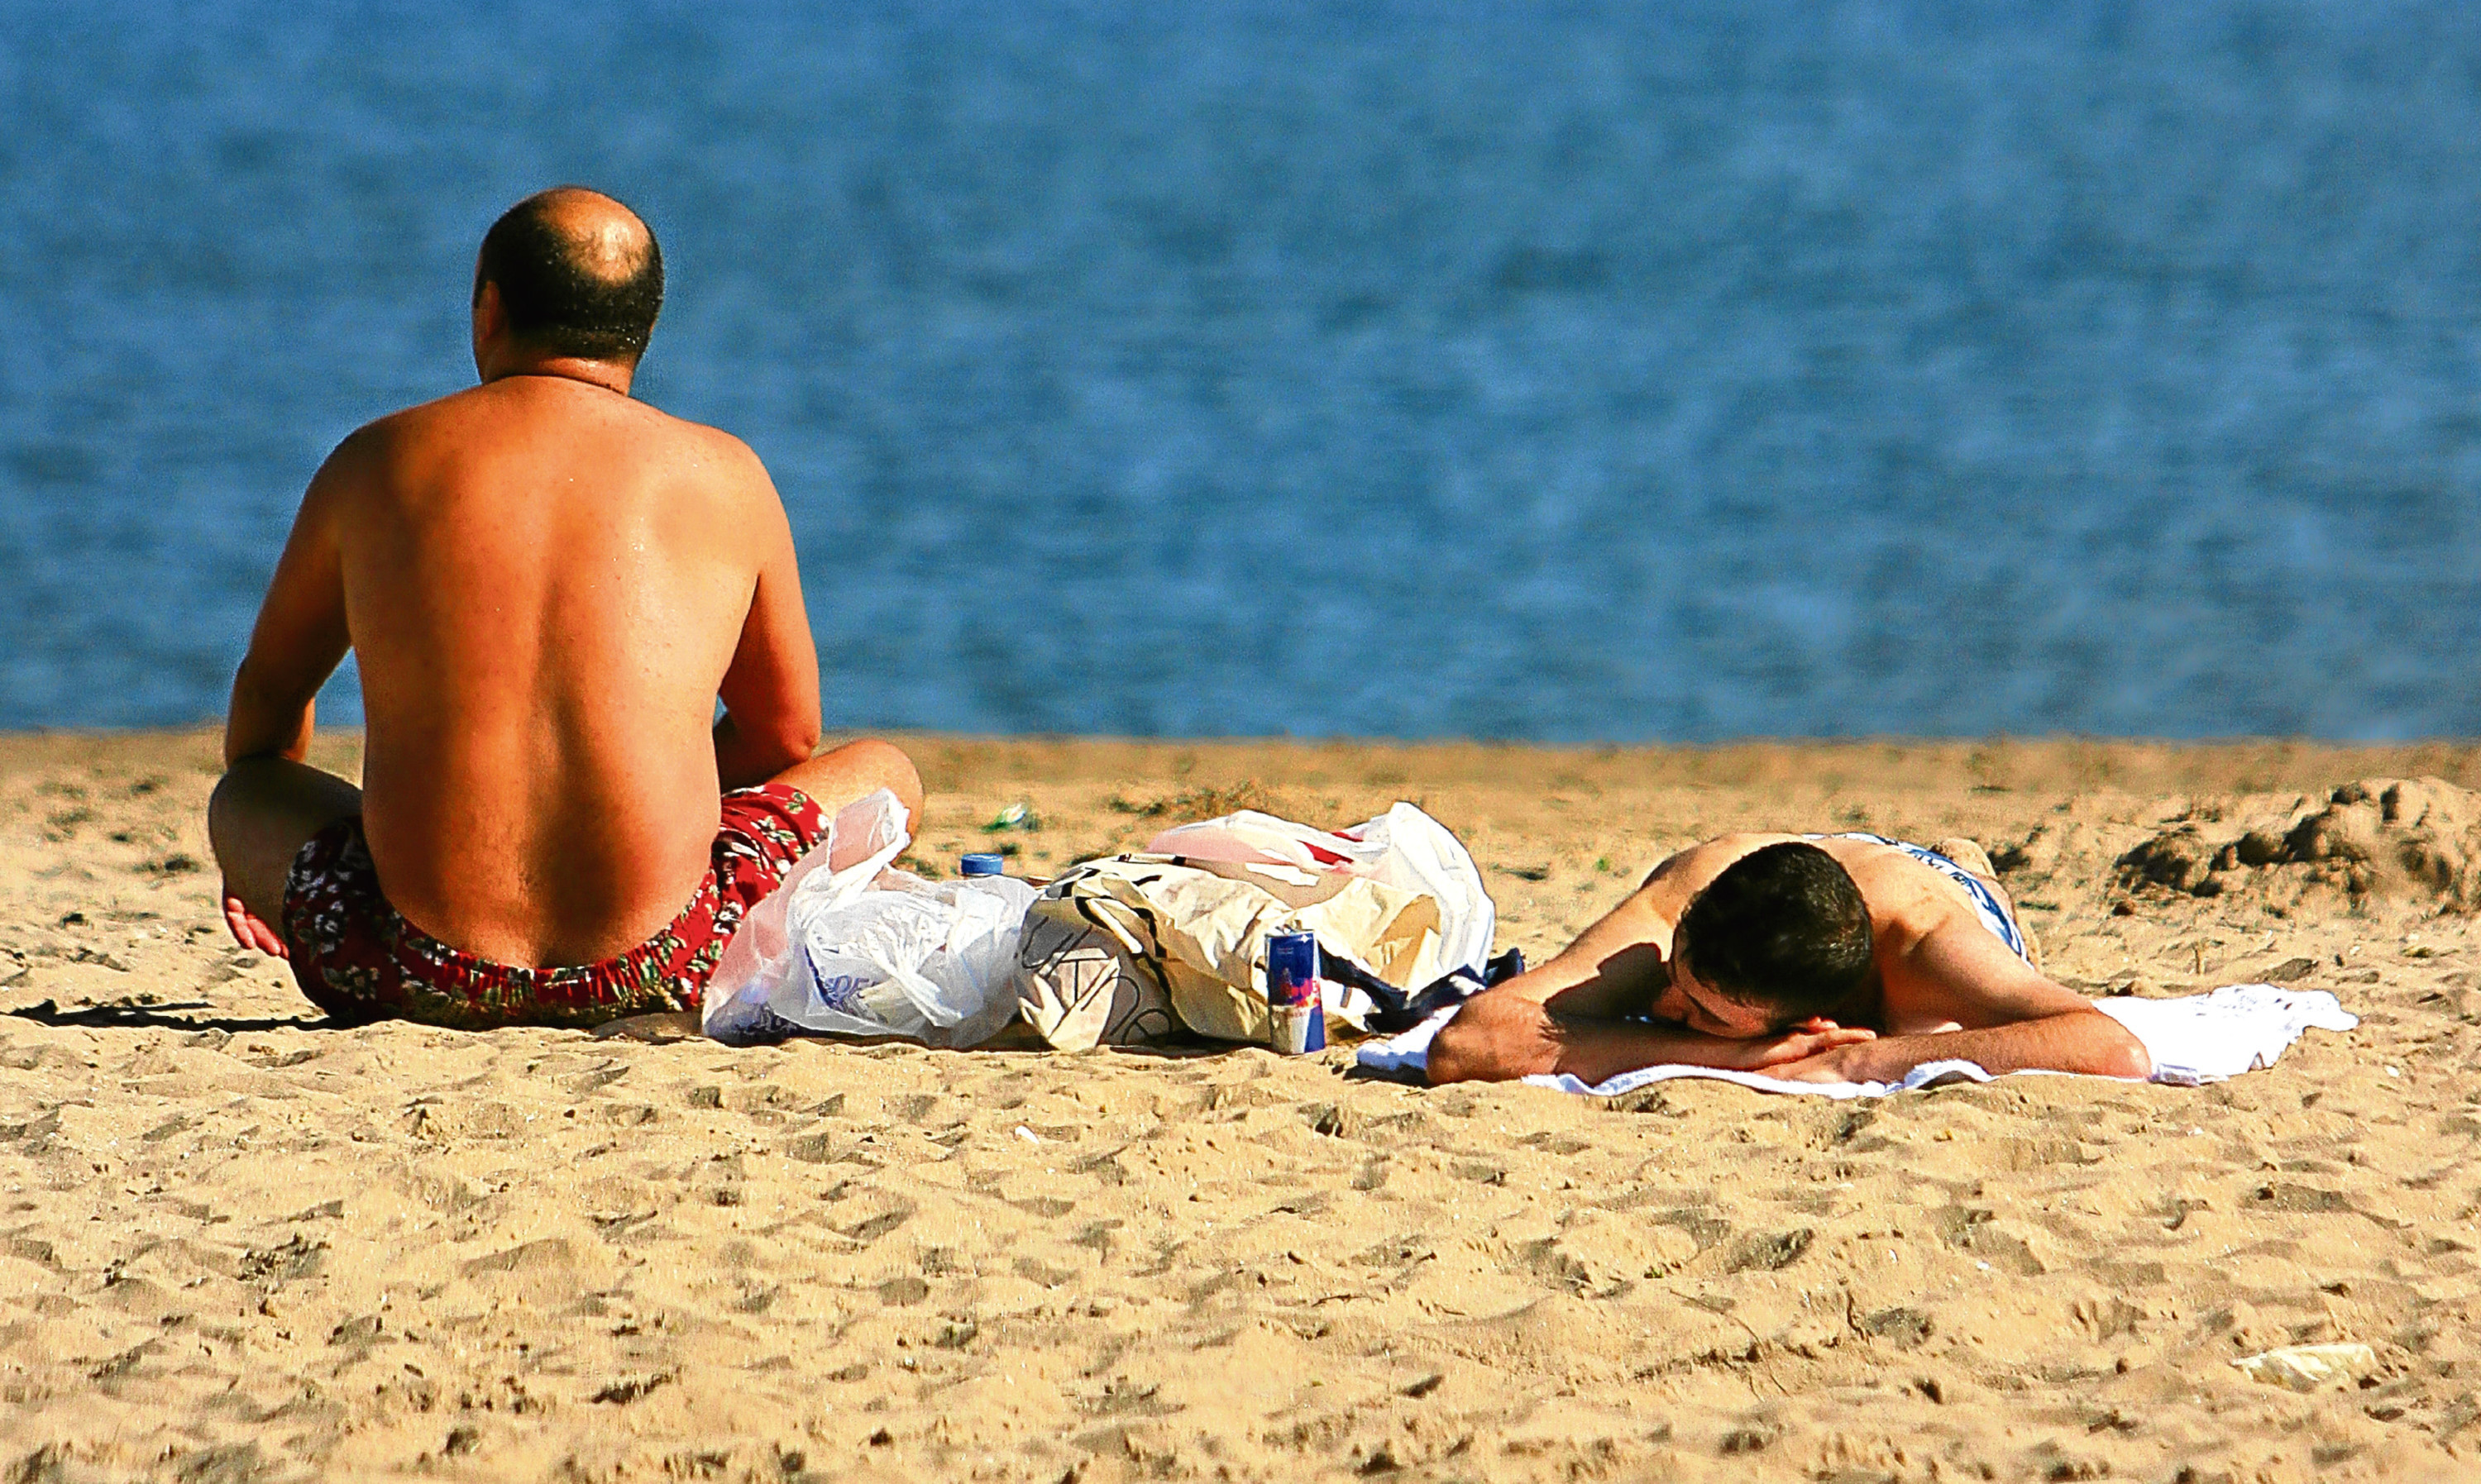 Sunbathers at Broughty Ferry beach make the most of what is often a very limited Scottish summer.